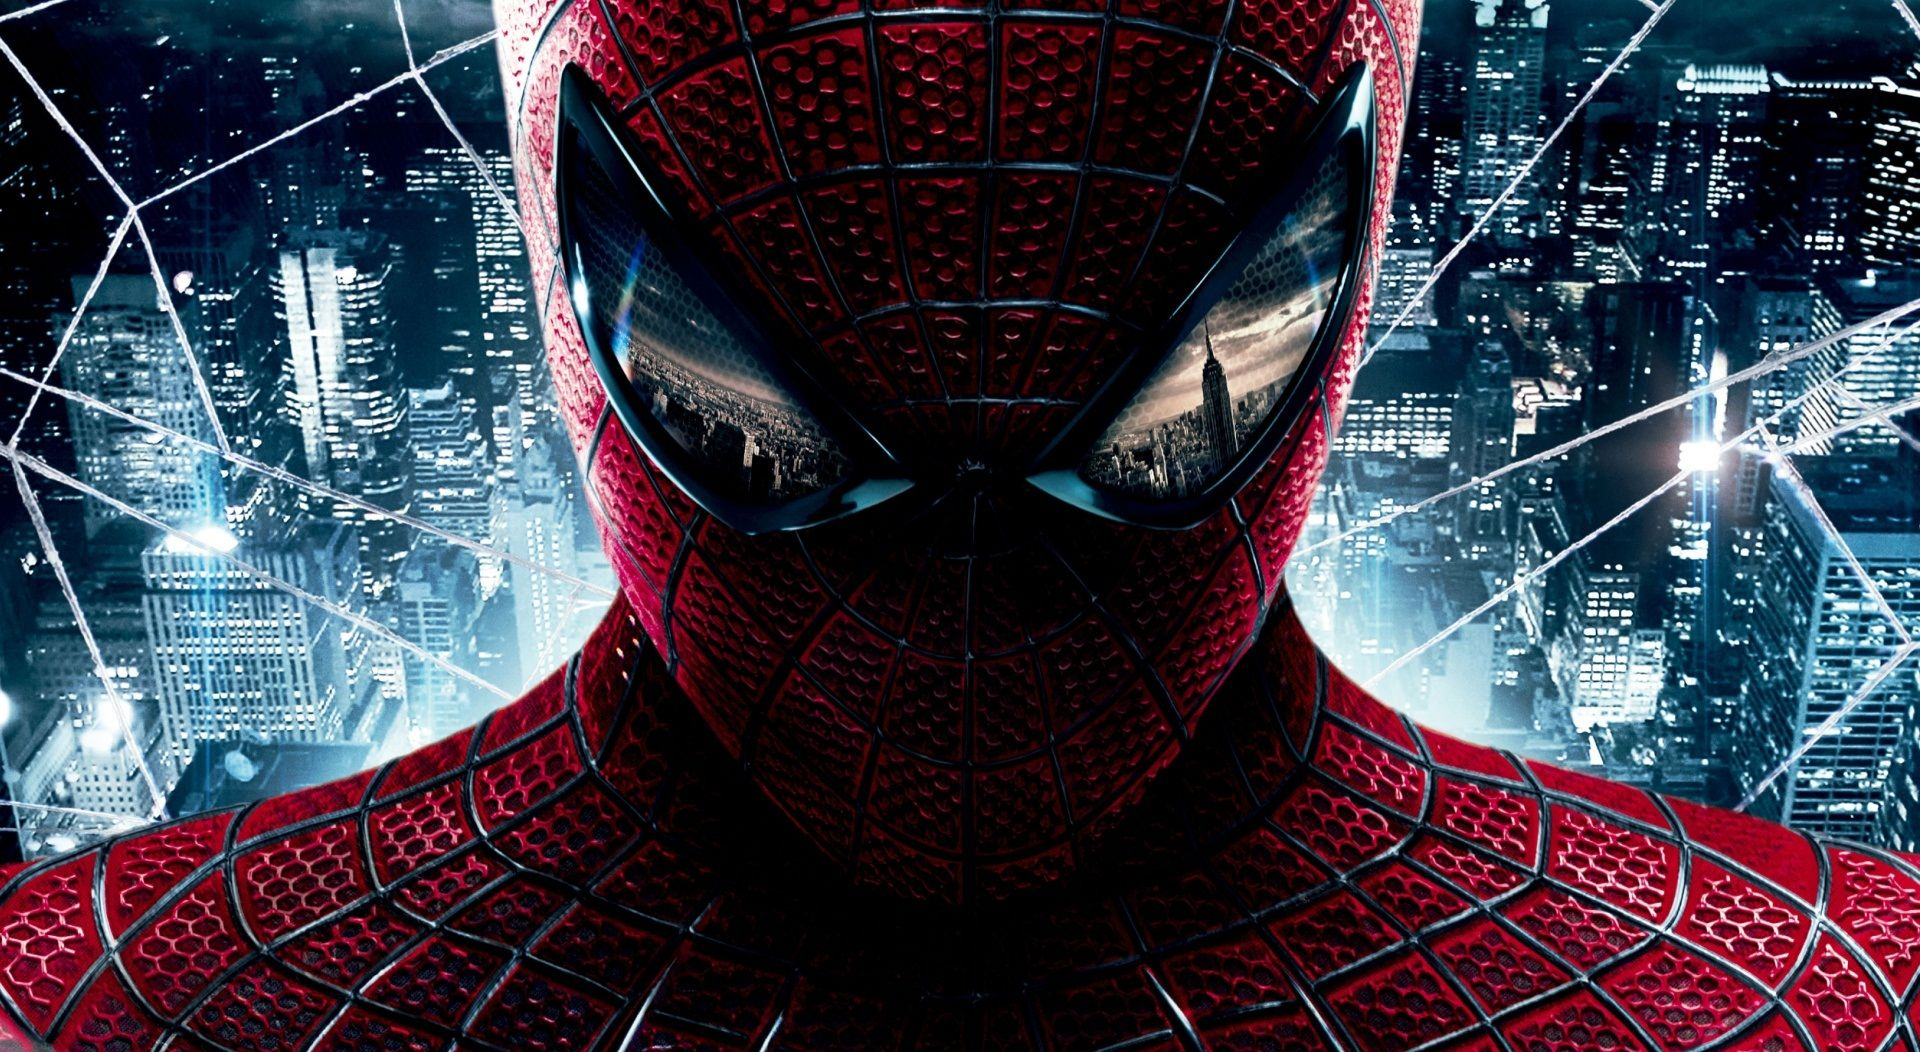 hd movie wallpapers | hd-the-amazing-spider-man-hollywood-movie